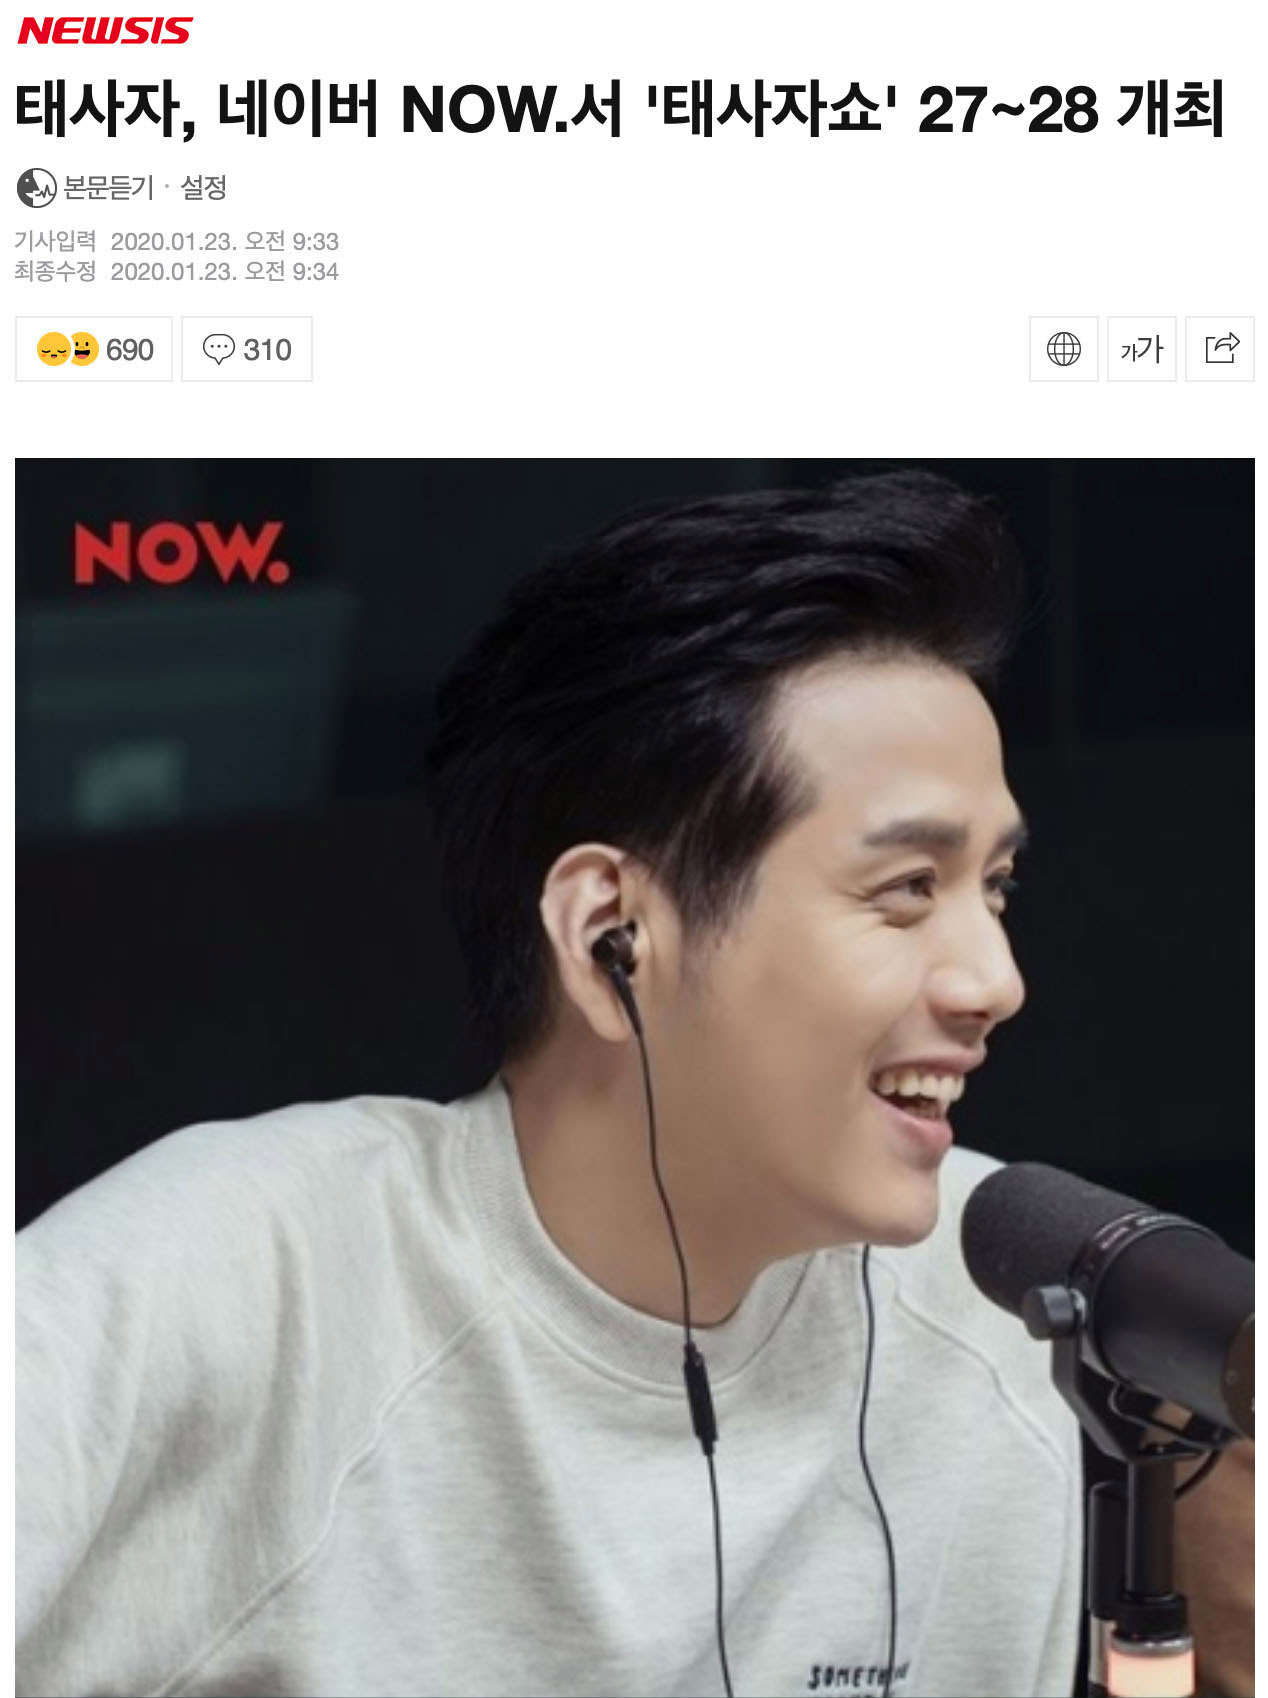 screencapture-n-news-naver-entertain-article-003-0009667850-2020-01-31-16_07_14_A